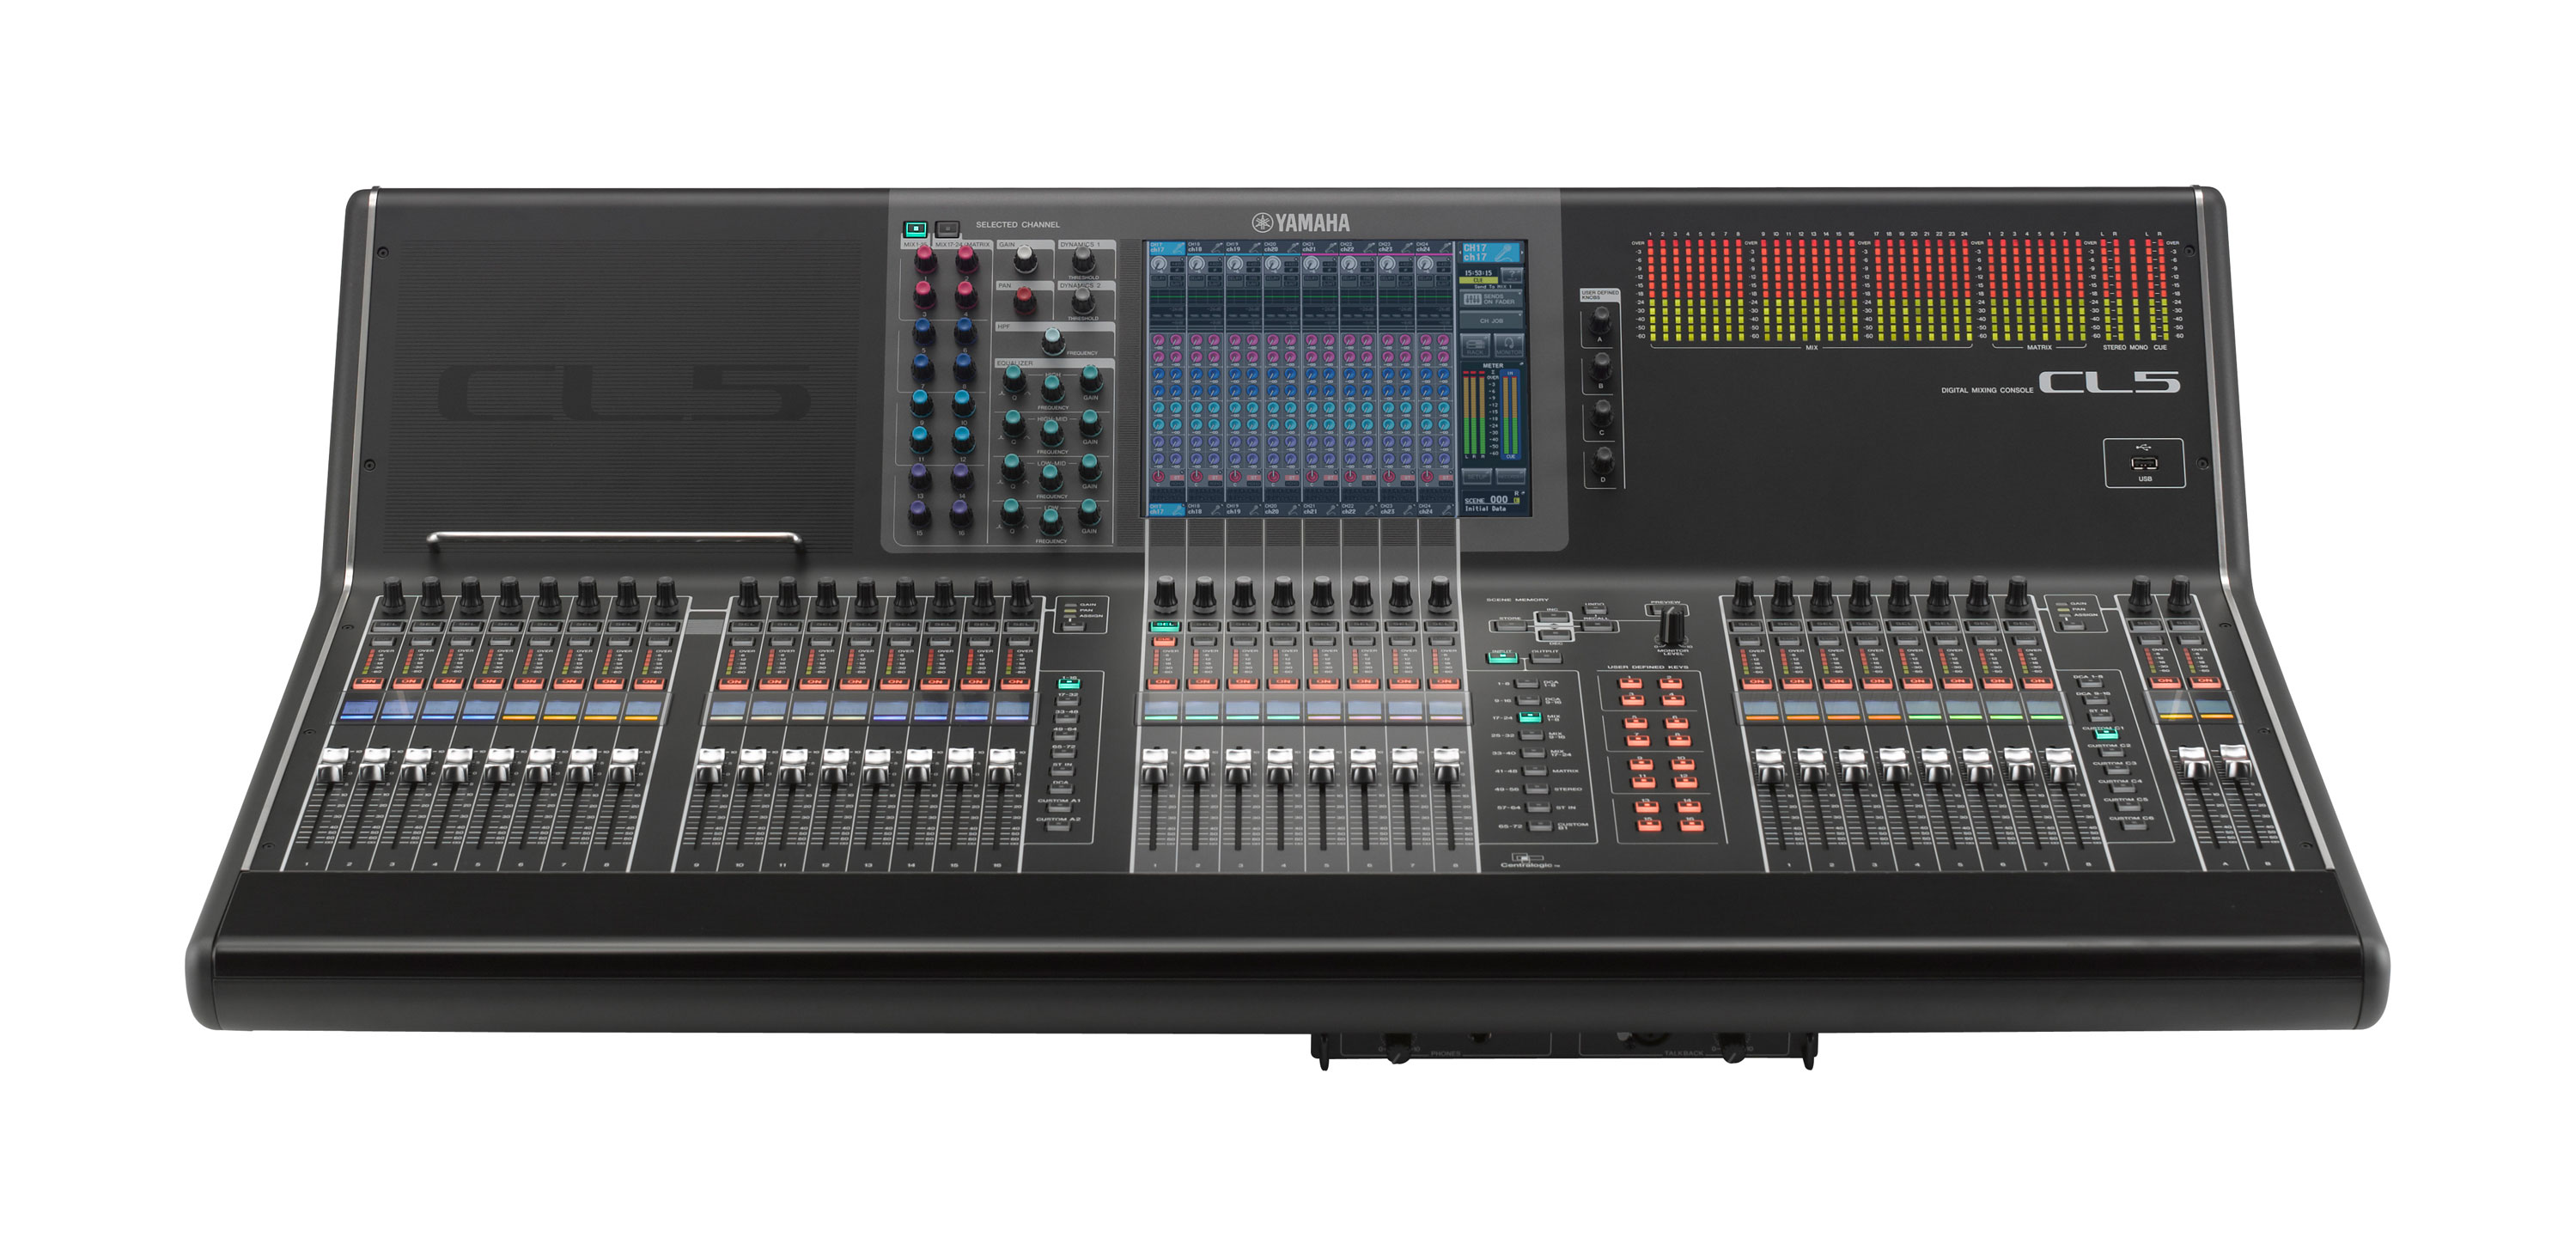 Yamaha CL5 Digital Audio Service